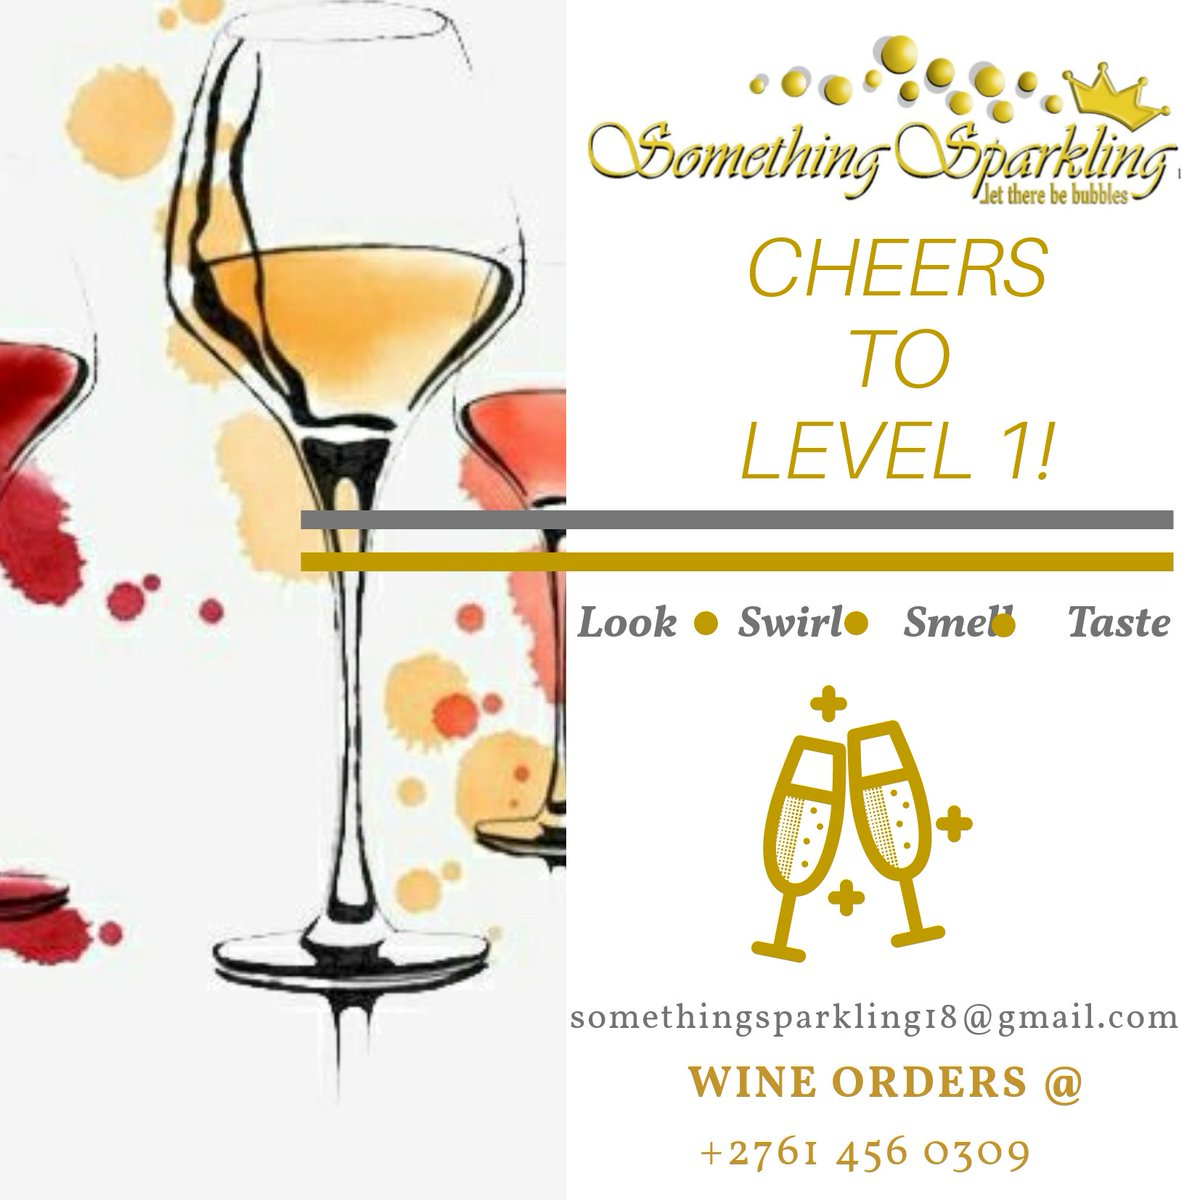 We're finally down to Level 1 of the #Lockdown in South Africa which means that you can order on Fridays too!   Please do call, email or Whatsapp us to order your bottle of grapes @smme_the #DJSBU #GirlTalkZA @TownshipBrands https://t.co/RGzRF3Gz4p